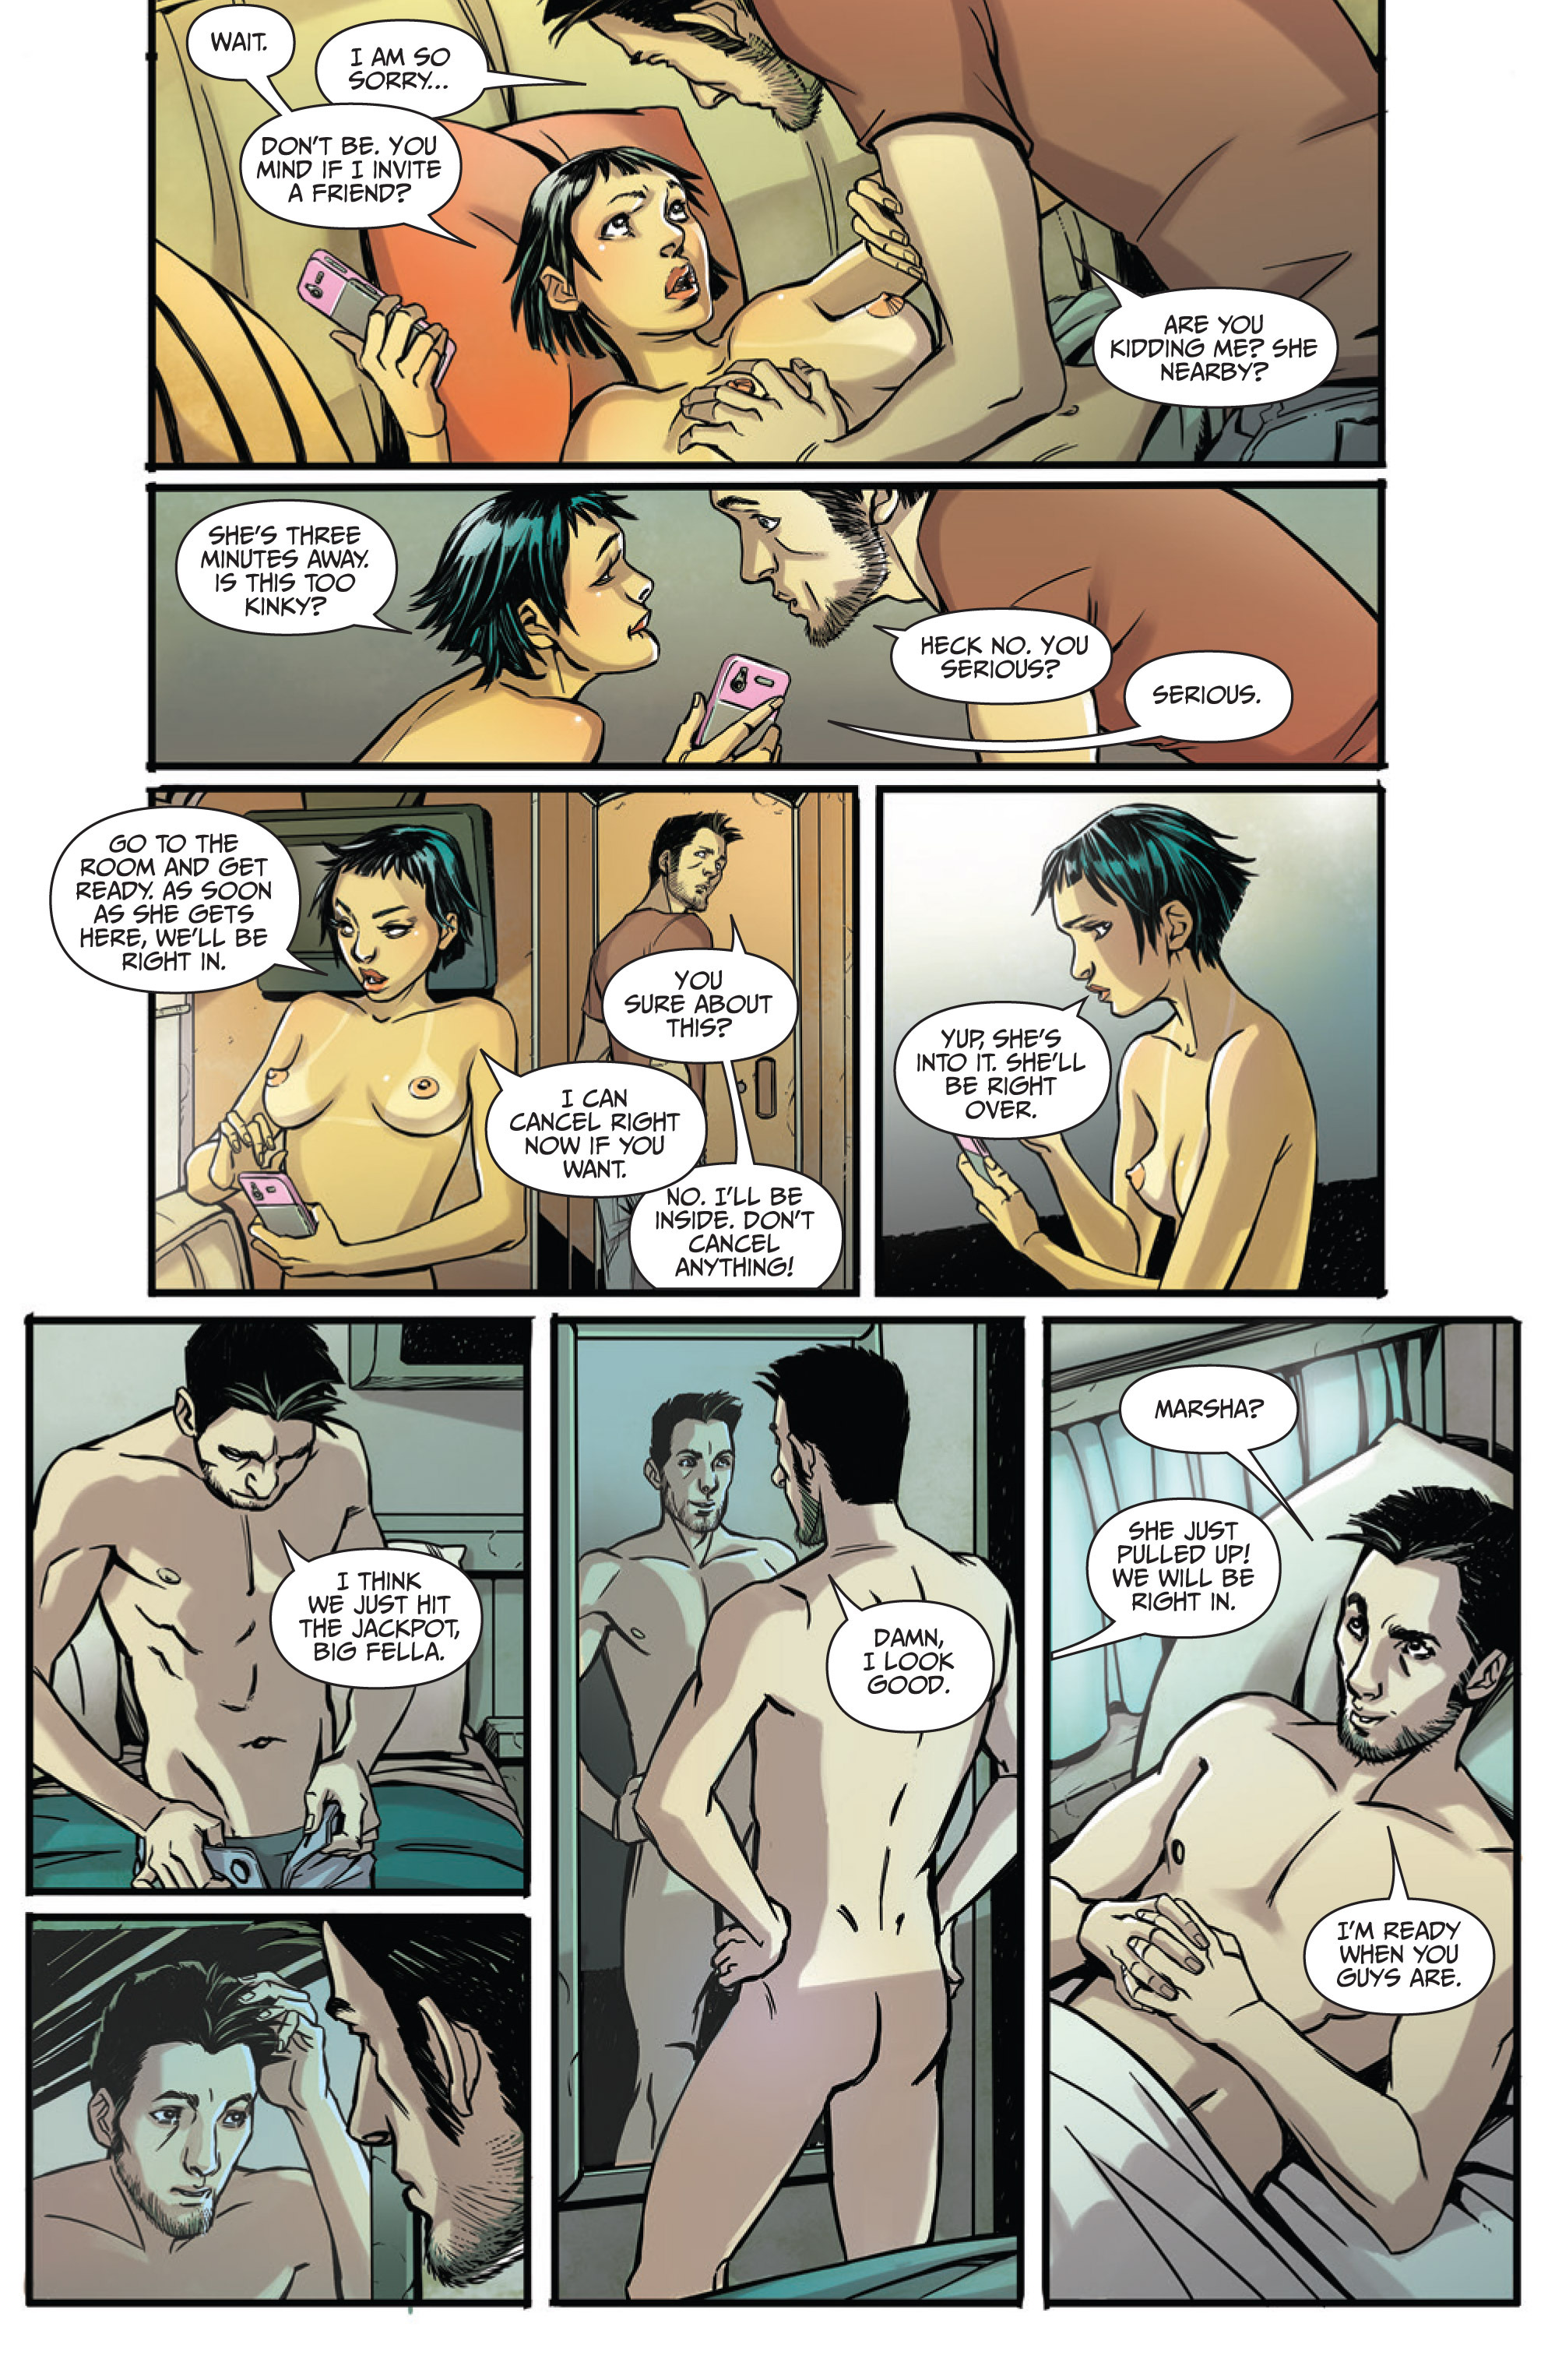 Read online Sex and Violence Vol. 2 comic -  Issue # Full - 11